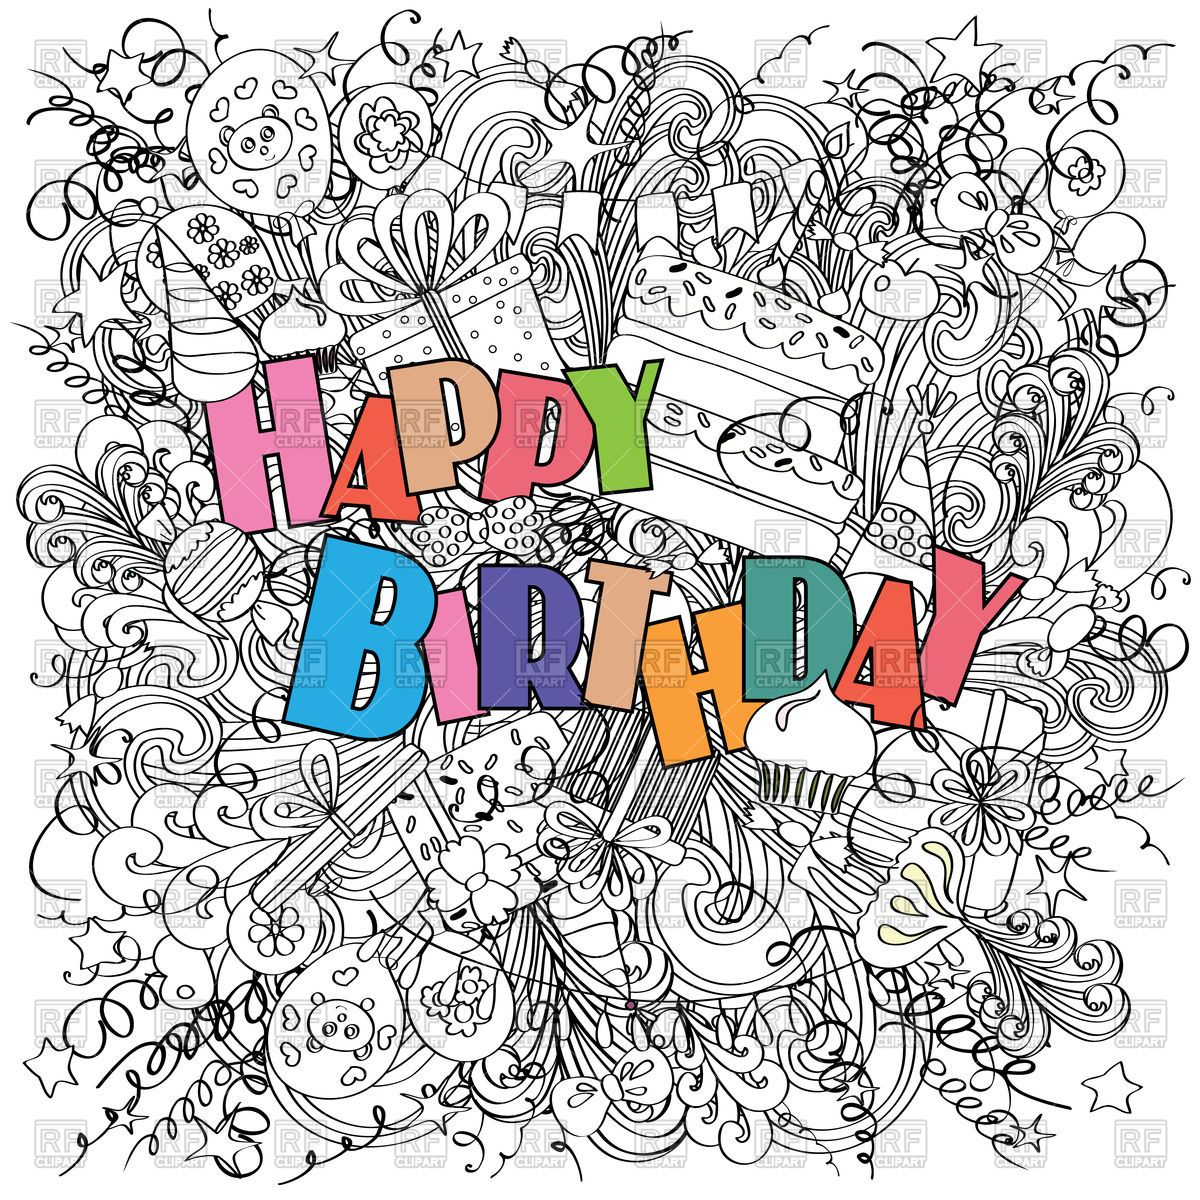 Happy Birthday Greeting Card 112332 Download Royalty Free Vector